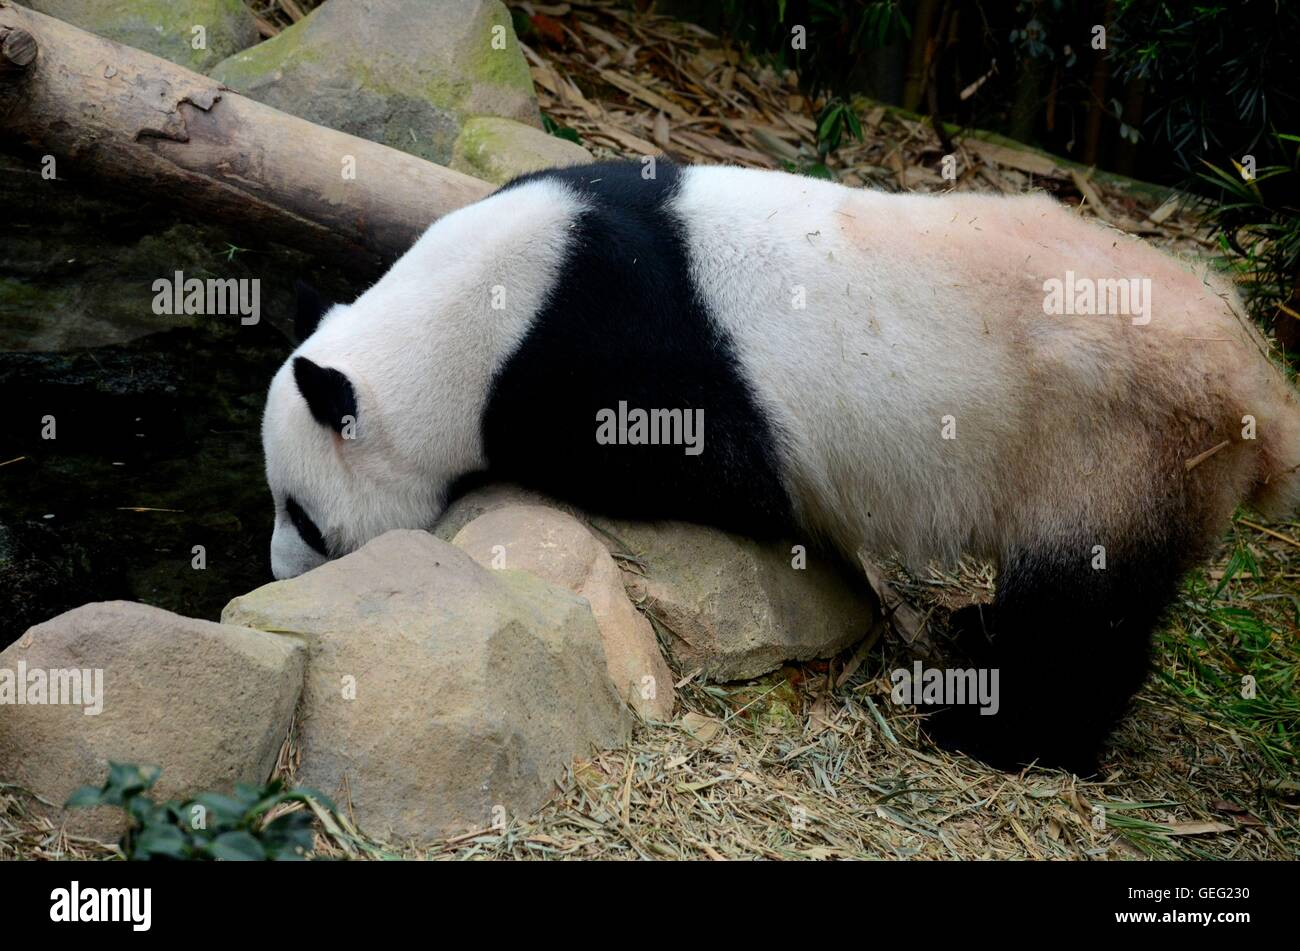 Black and white Panda bear leans over rocks and drinks water inside enclosure - Stock Image